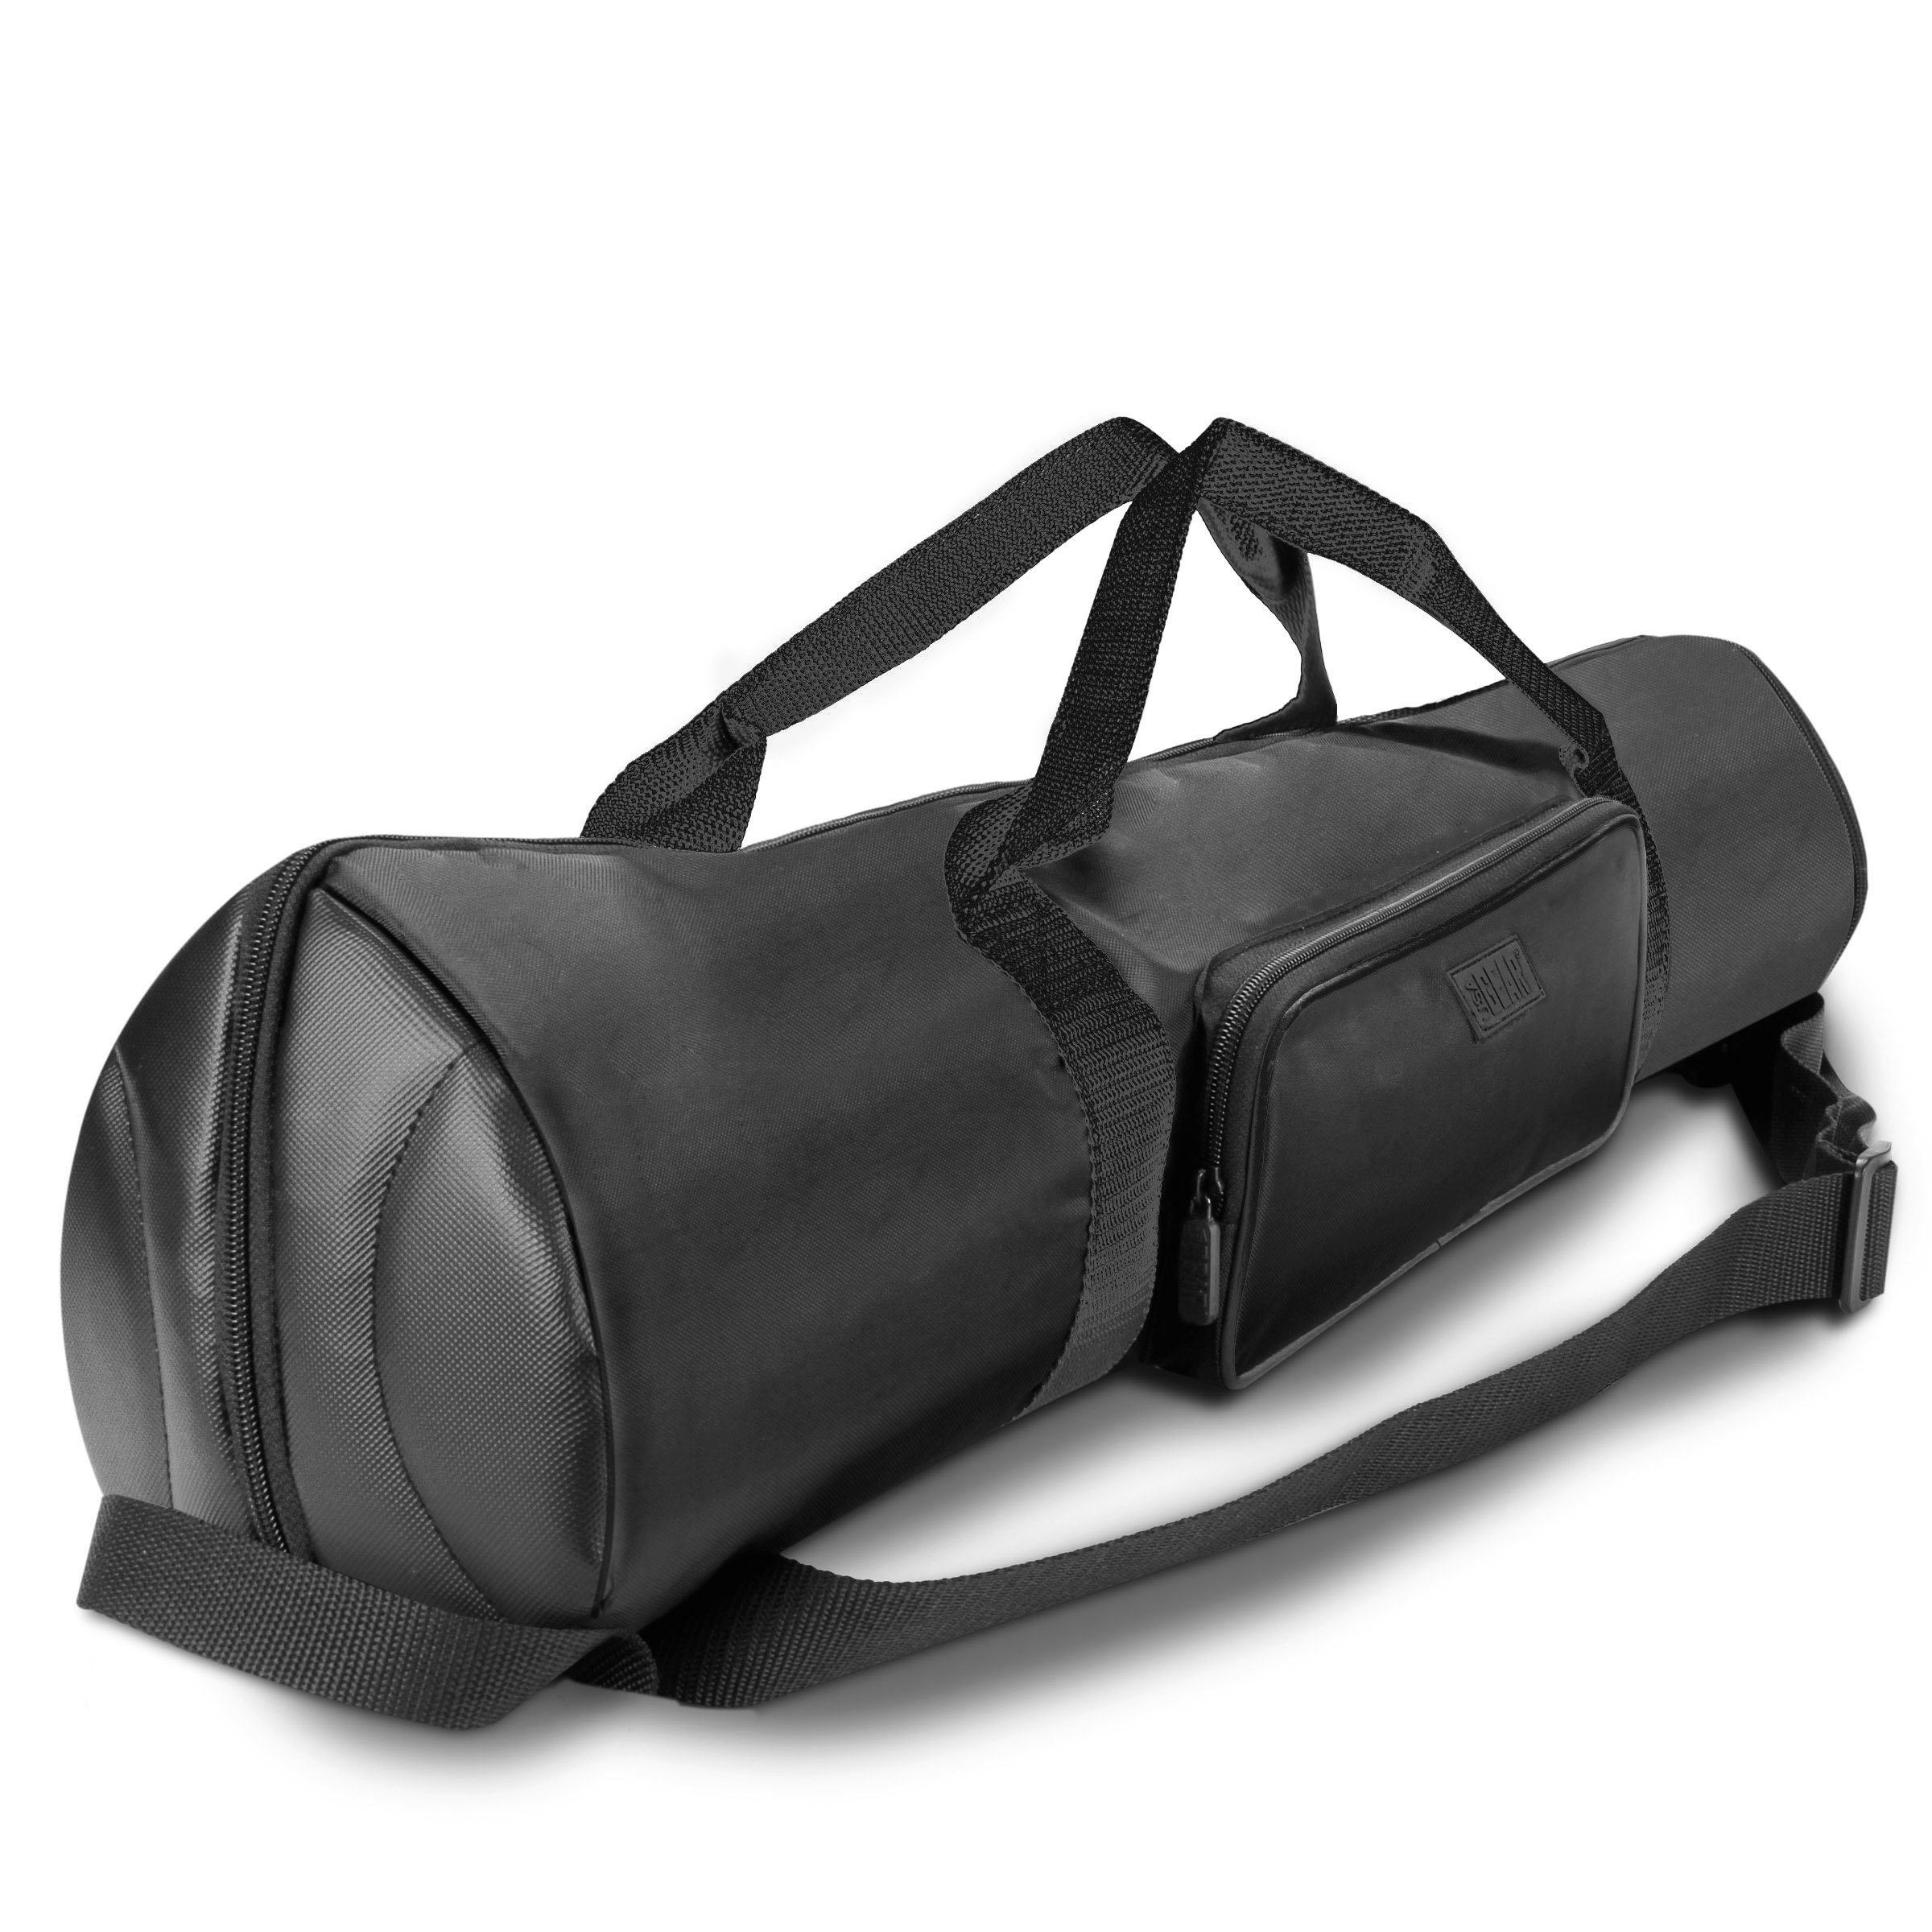 USA Gear Padded Tripod Case Bag (Black) - Holds Tripods from 21 to 35 inches - Adjustable Size Extension, Storage Pocket and Shoulder Strap for Professional Camera Accessories and Photo Carrying Needs